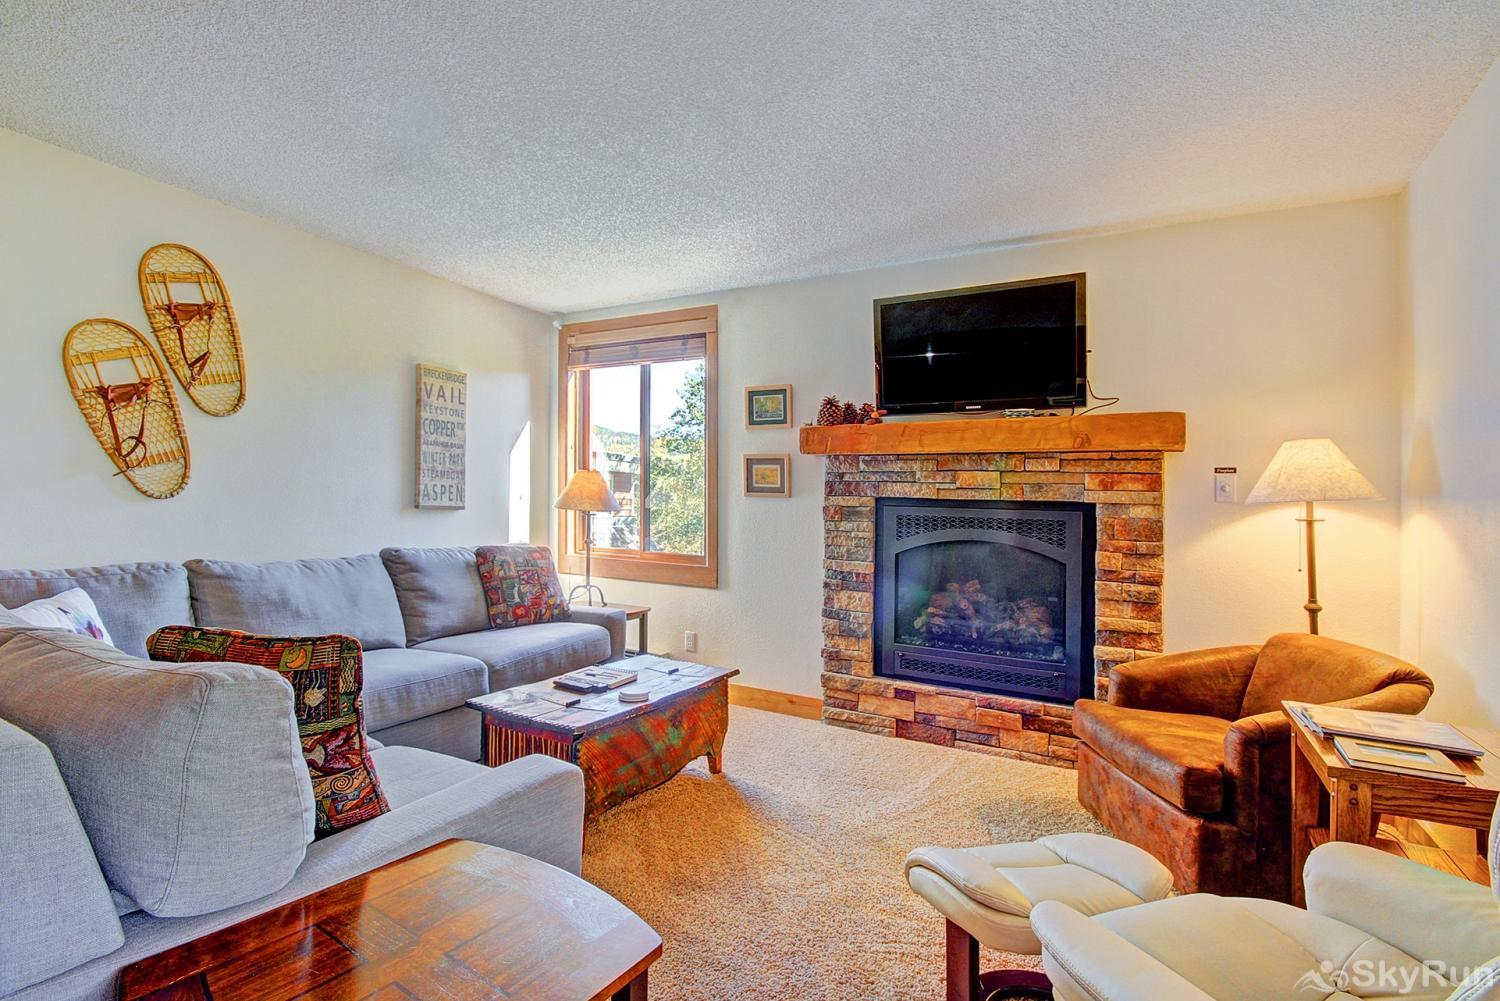 Ski Hill 8 Additional view of living area with gas fireplace